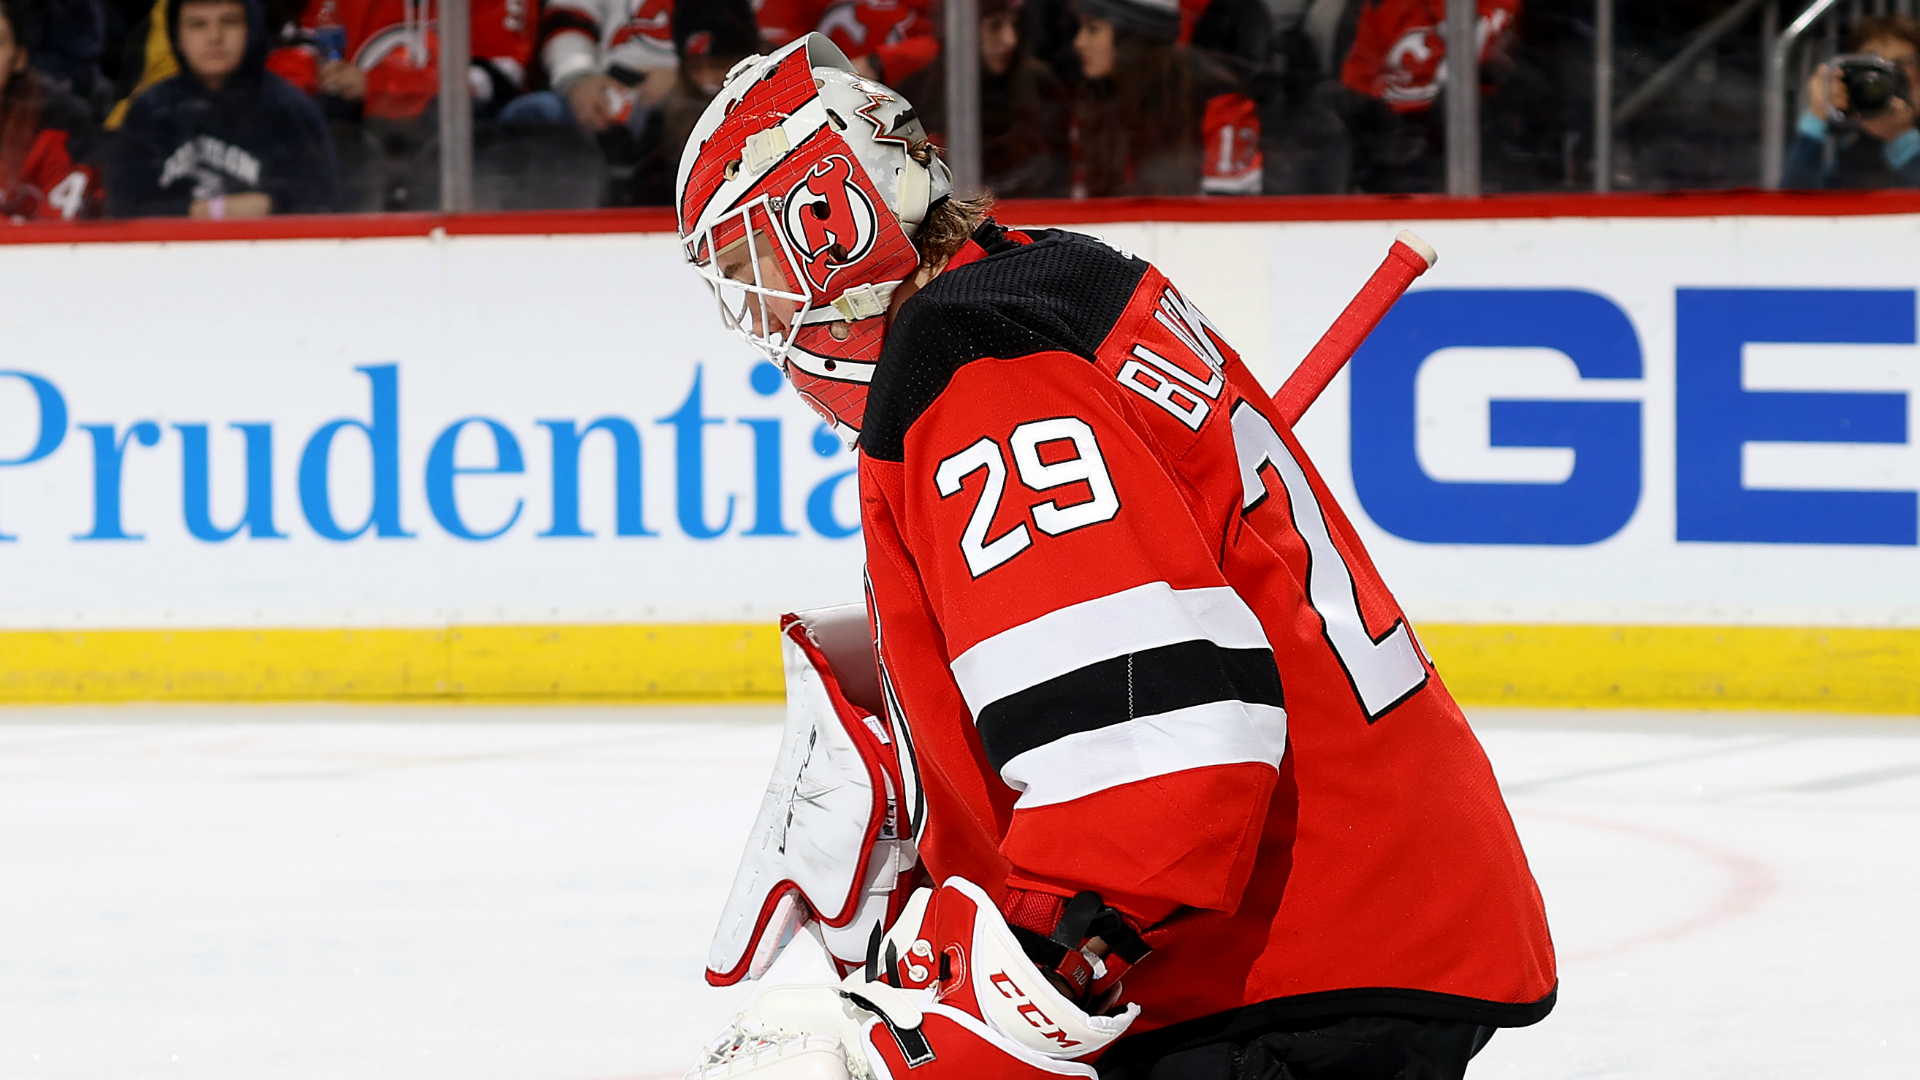 Devils' Mackenzie Blackwood hoping to re-sign: 'I would love to play here long-term' 1